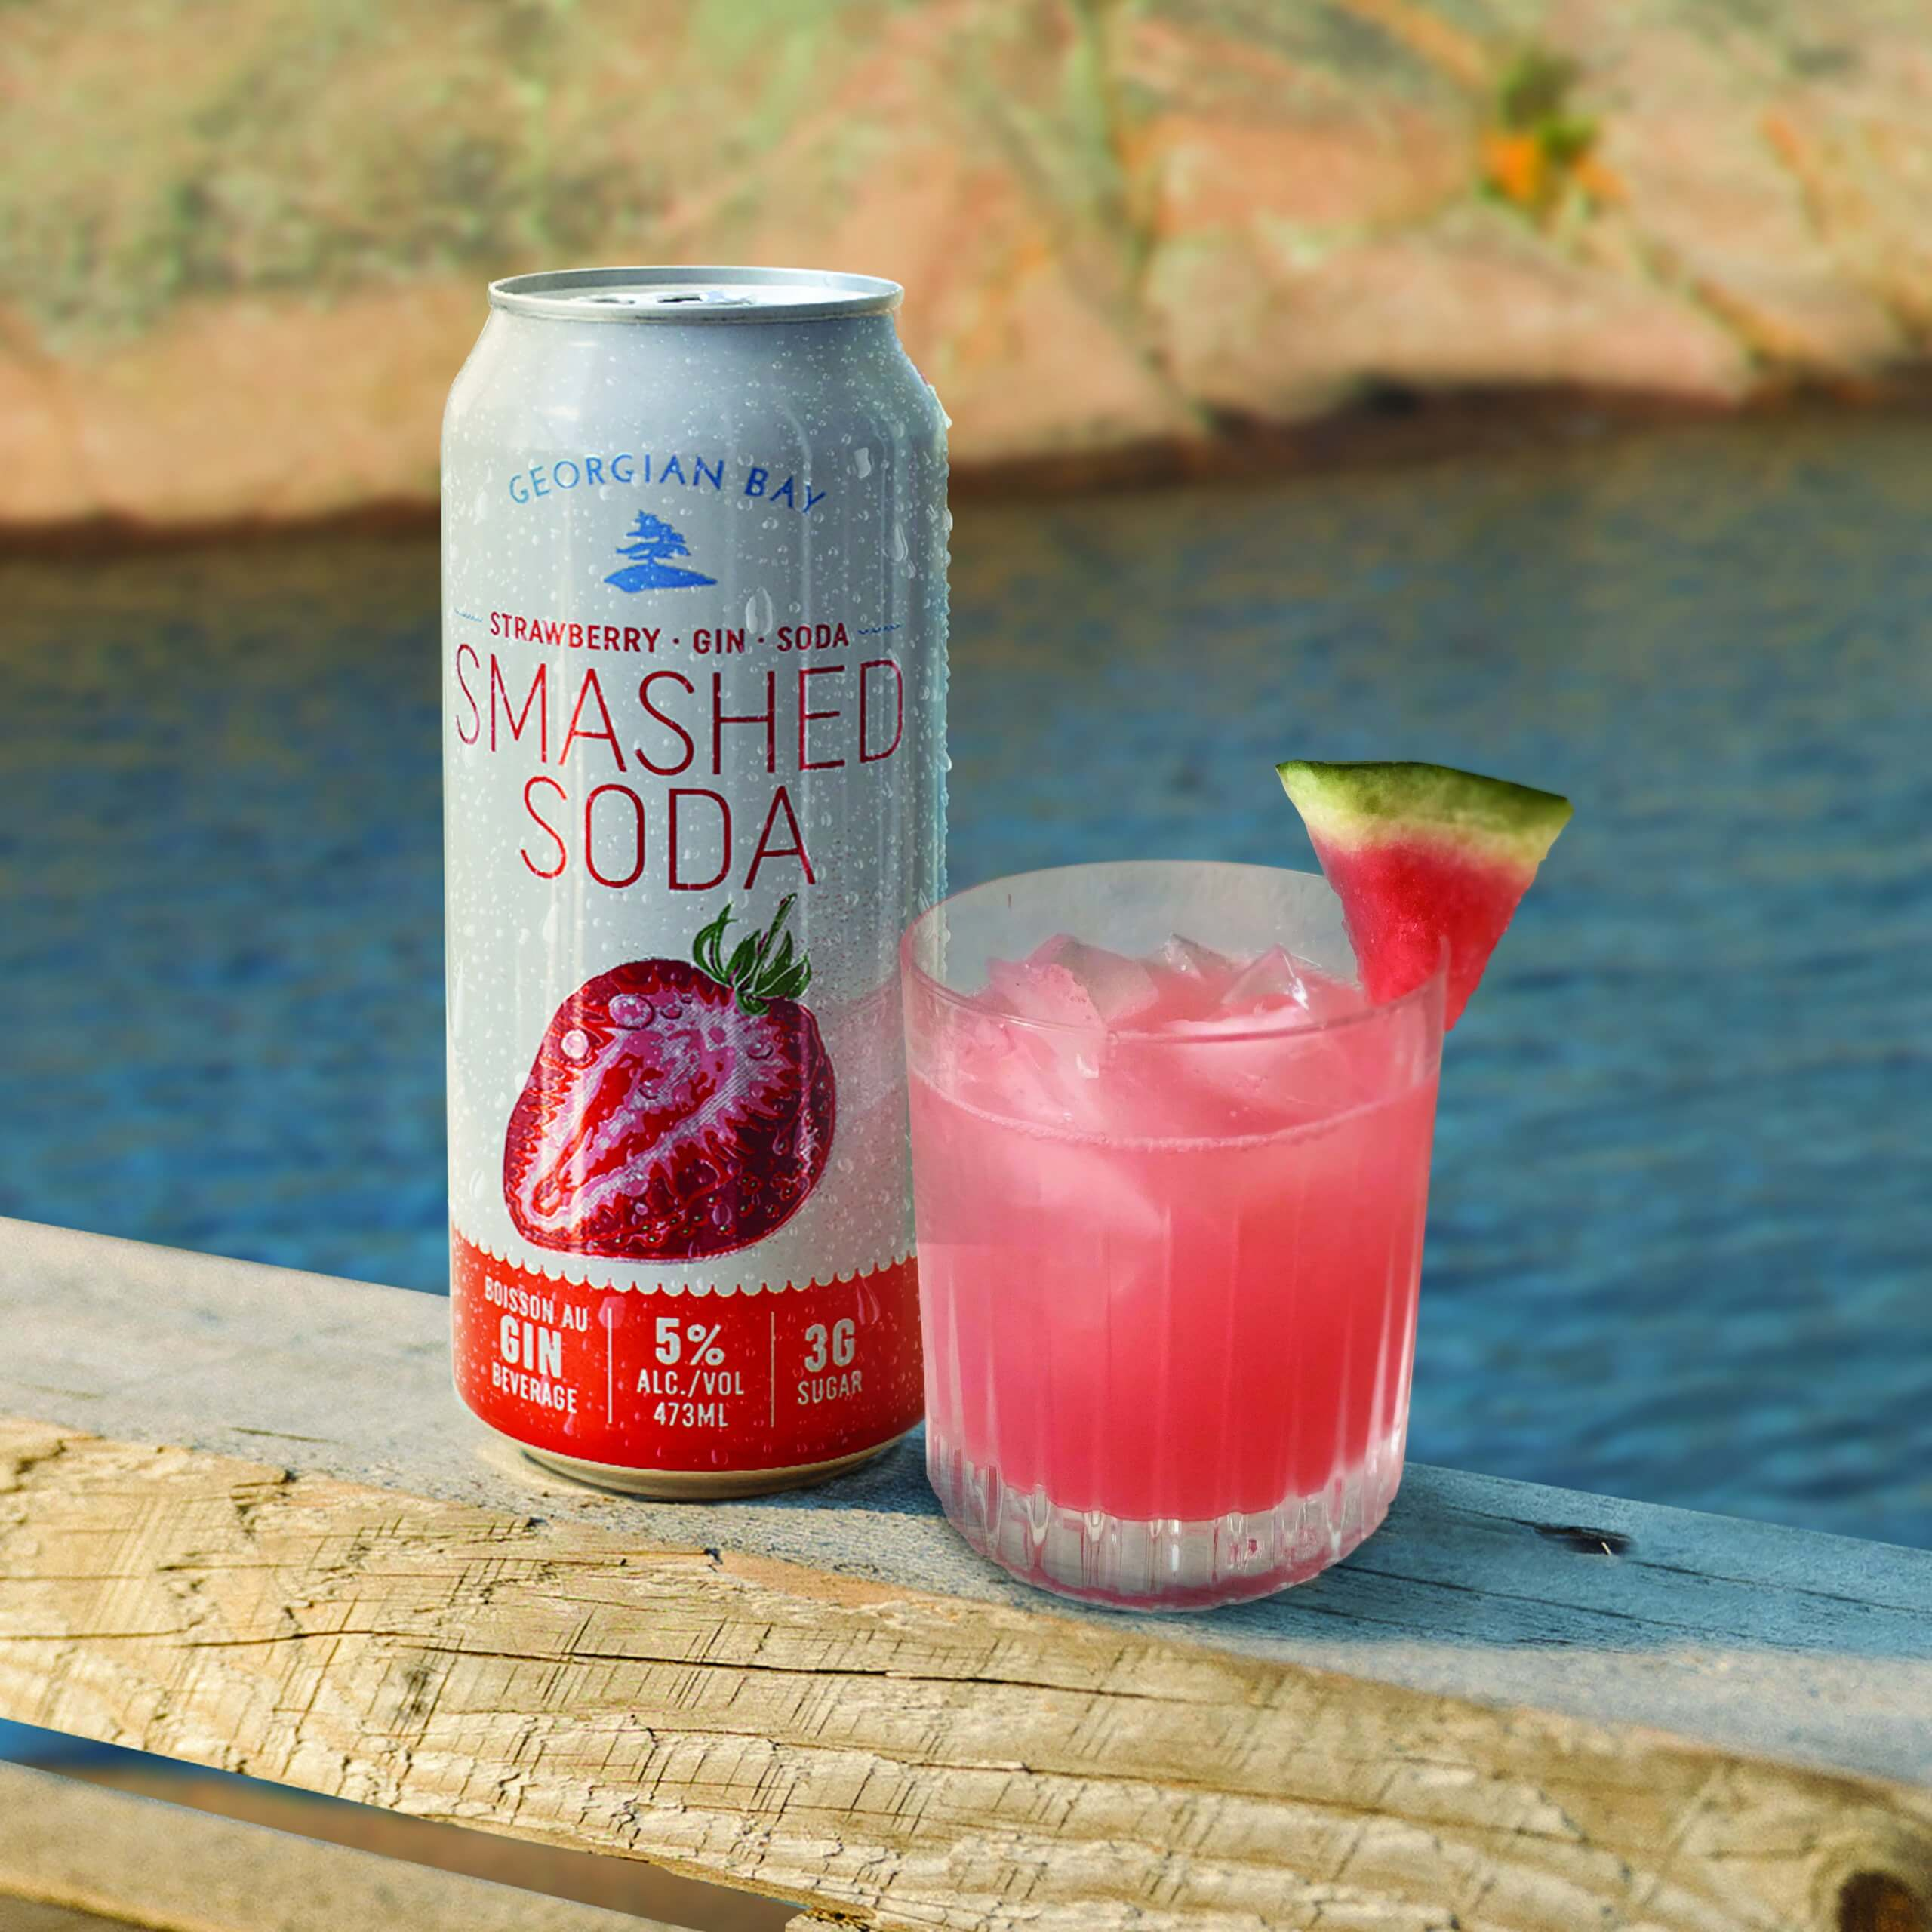 Georgian Bay Strawberry Smashed Soda - Strawberry Watermelon Cosmo